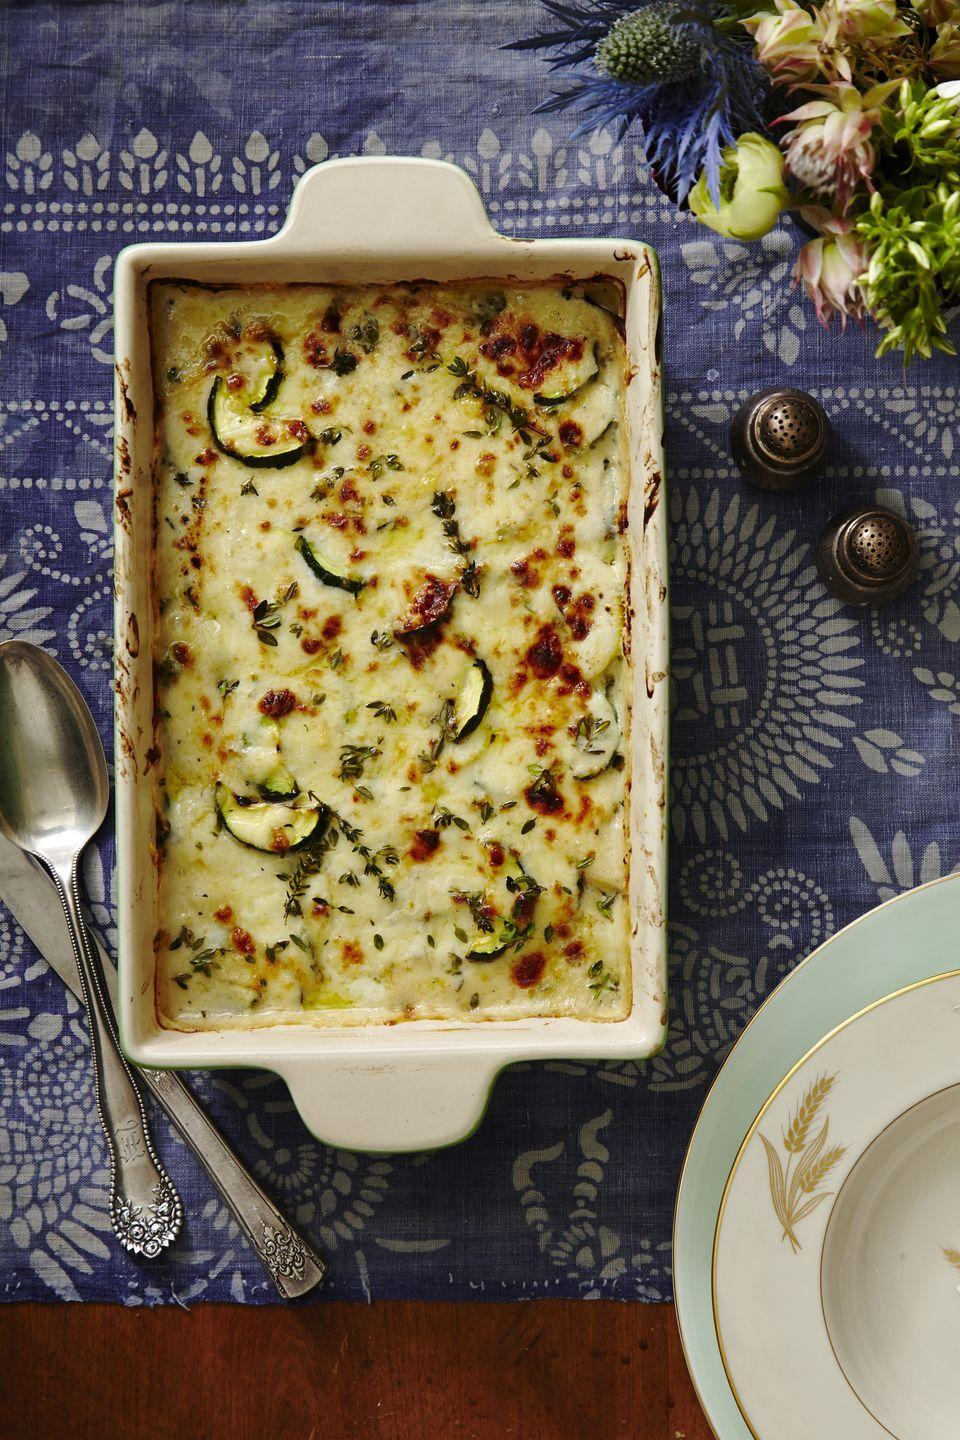 """<p>This creamy, decadent side dish is seriously making us reconsider our love for potatoes.</p><p><em><a href=""""https://www.goodhousekeeping.com/food-recipes/easy/a34576/thyme-scented-squash-gratin/"""" rel=""""nofollow noopener"""" target=""""_blank"""" data-ylk=""""slk:Get the recipe for Thyme-Scented Squash Gratin »"""" class=""""link rapid-noclick-resp"""">Get the recipe for Thyme-Scented Squash Gratin »</a></em></p>"""